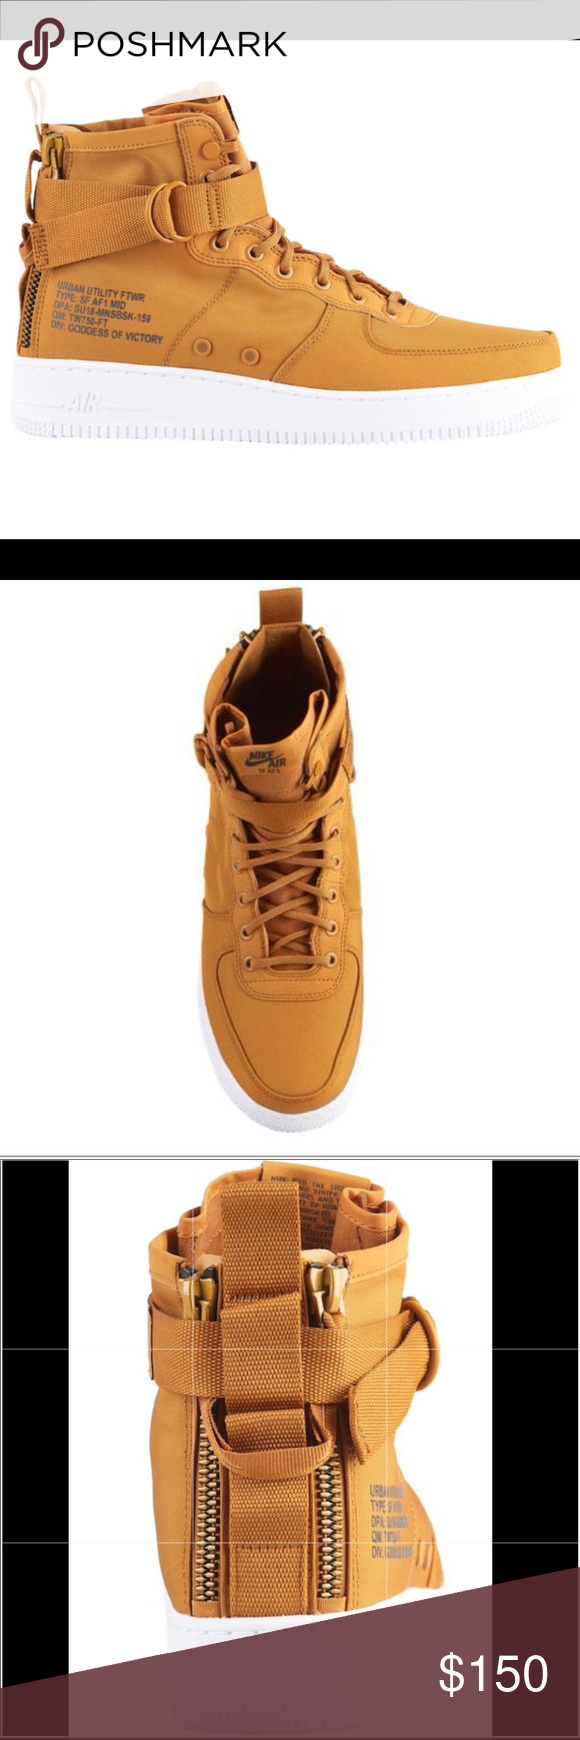 check out ce4e3 ce6b4 Nike SF Air Force 1 Mid Nike SF Air Force 1 Mid 'Desert Ochre' / Sequoia  White. New but no box size 10.5 Sku 917753 700 Designed by Bruce Kilgore Nike  Shoes ...